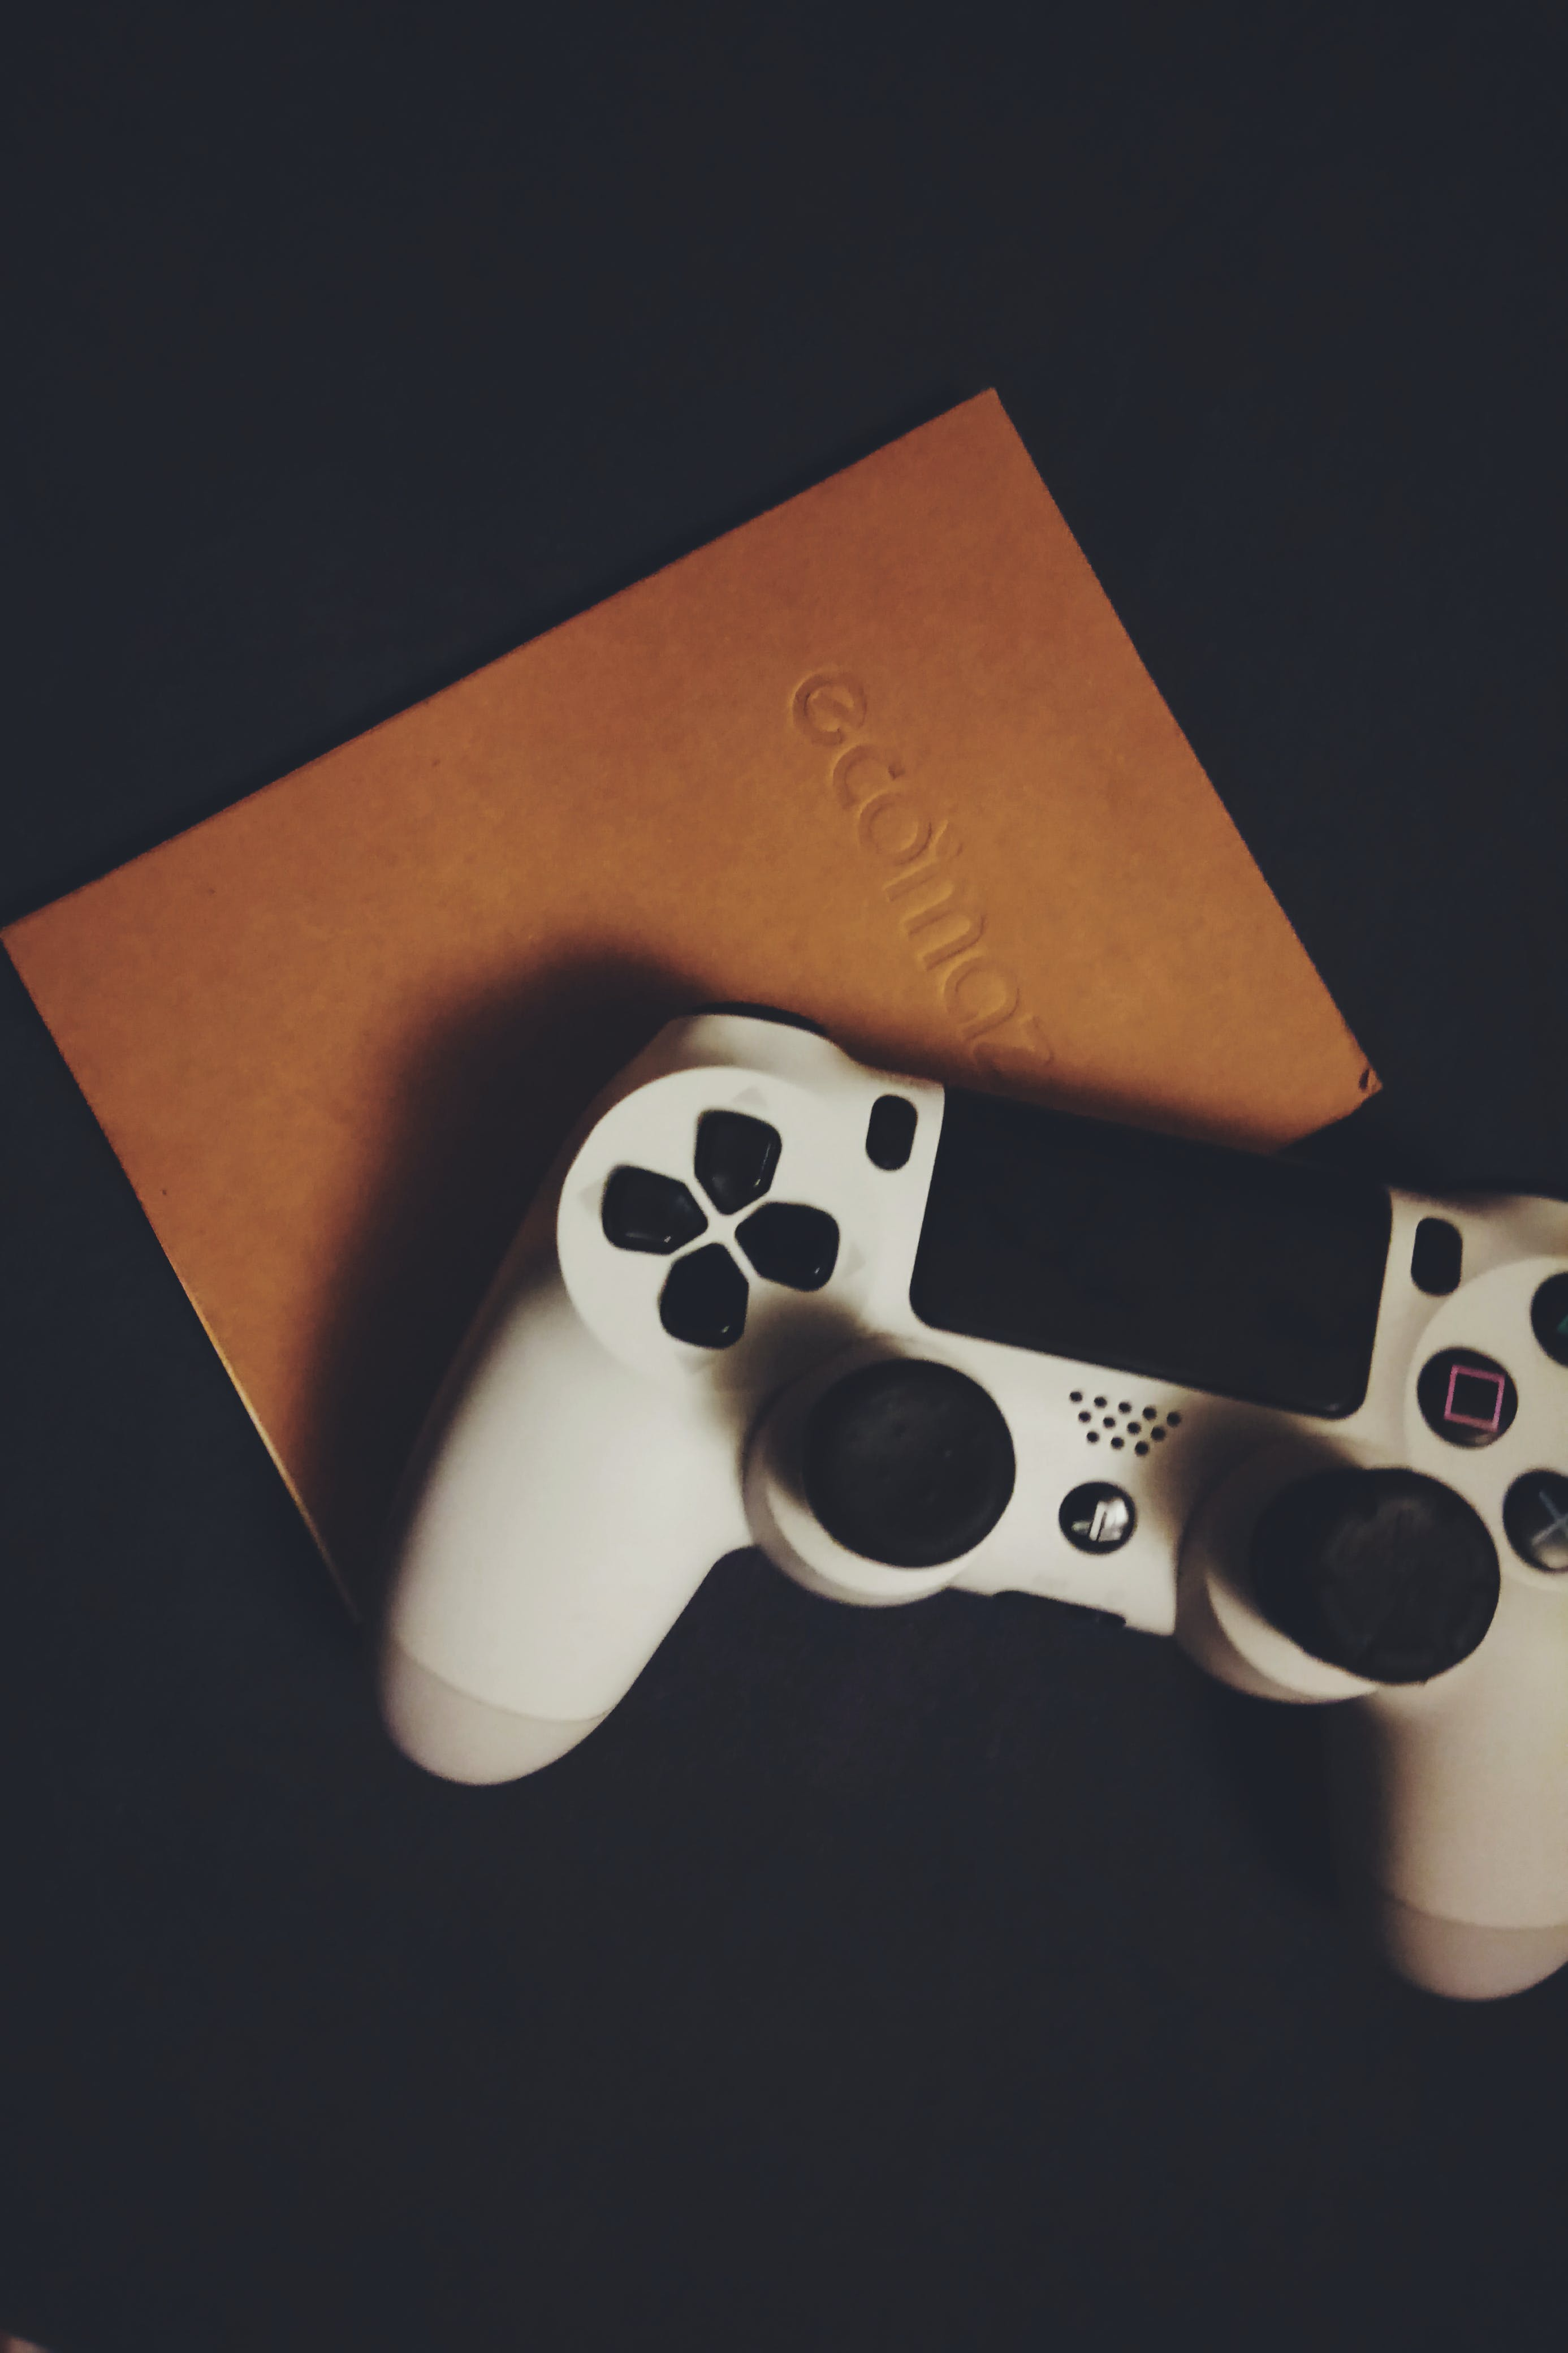 Free stock photo of notebook, modern, analog, controller